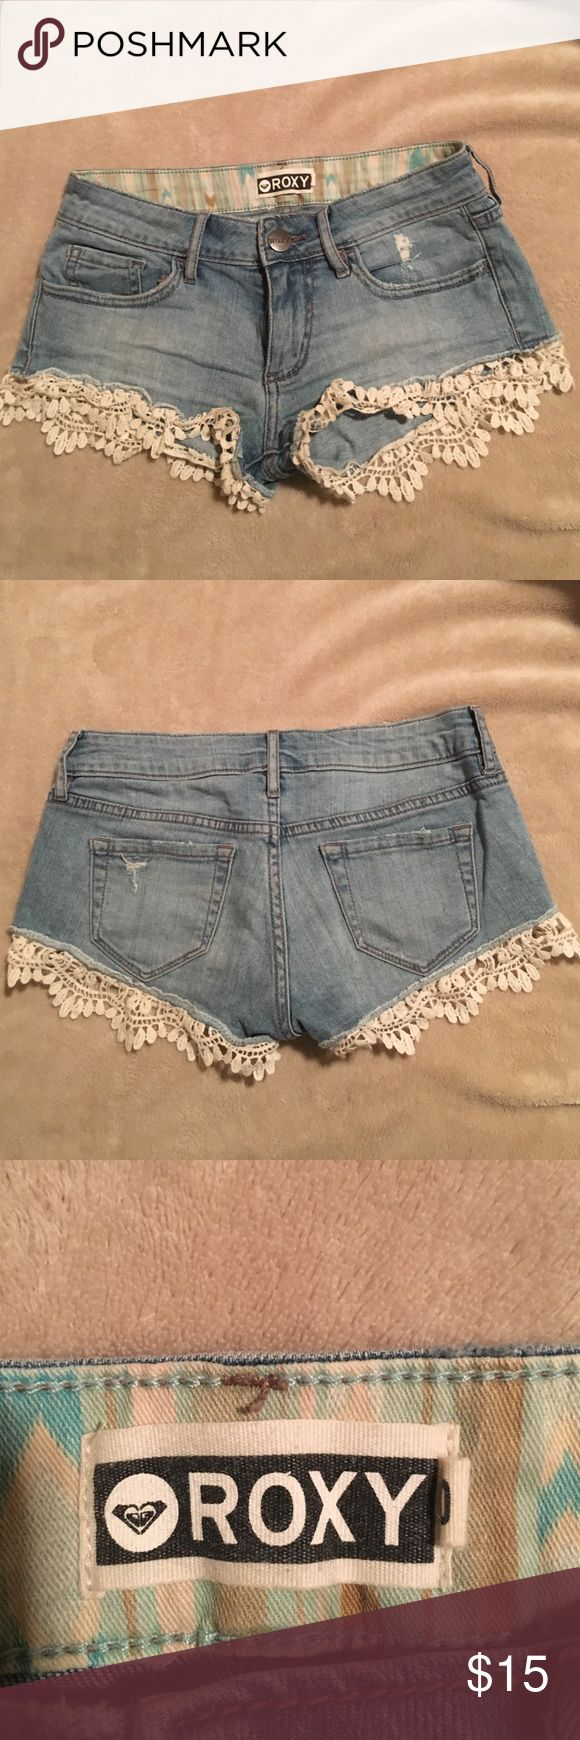 ROXY jean shorts with lace super comfy jean shorts with cute lace at the bottom Roxy Shorts Jean Shorts